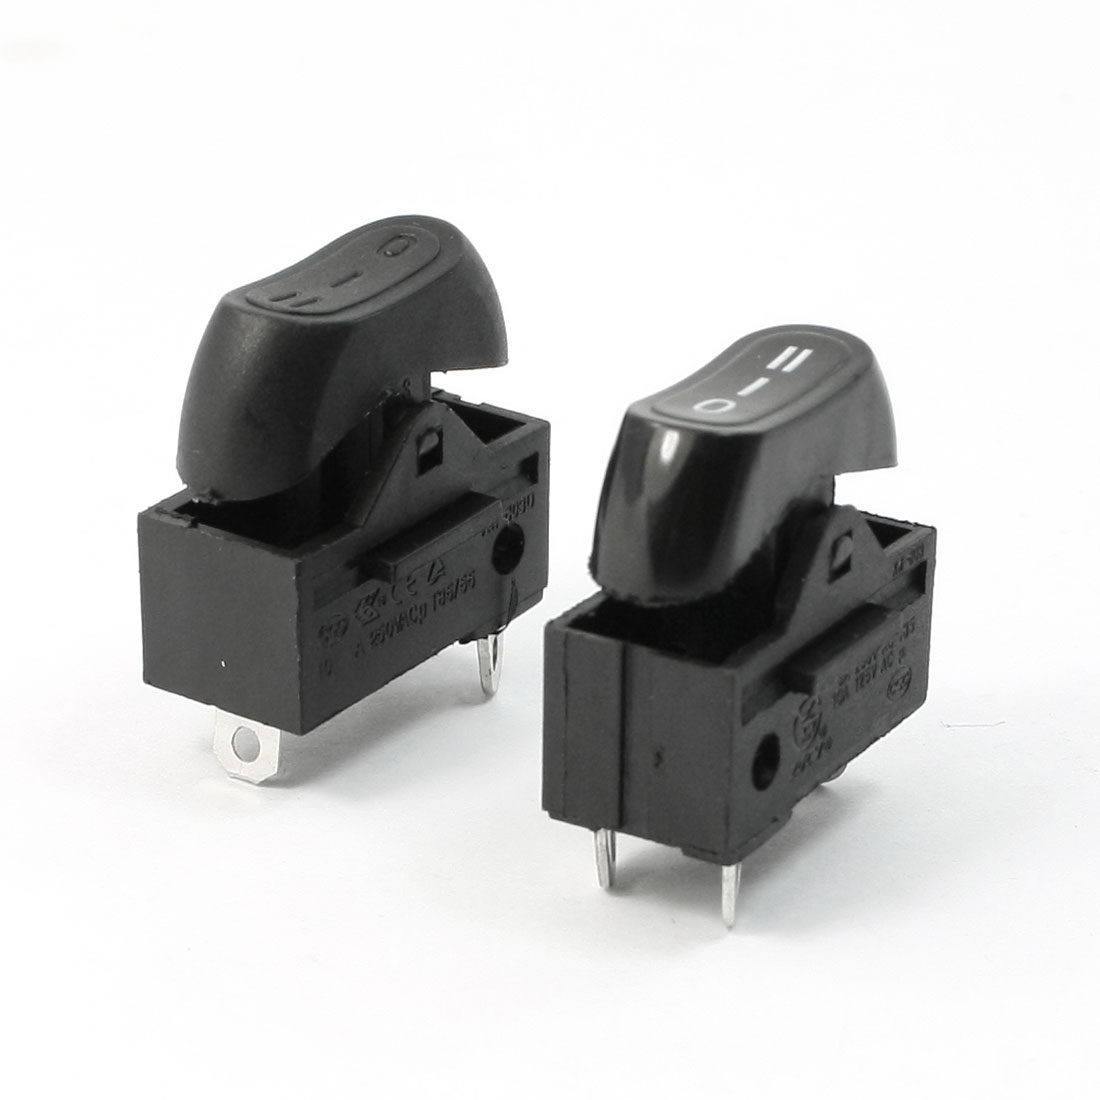 AC 250V 10A SPDT 3 Poles 3 Position Terminals Rocker Switch Pair for Hair Drier